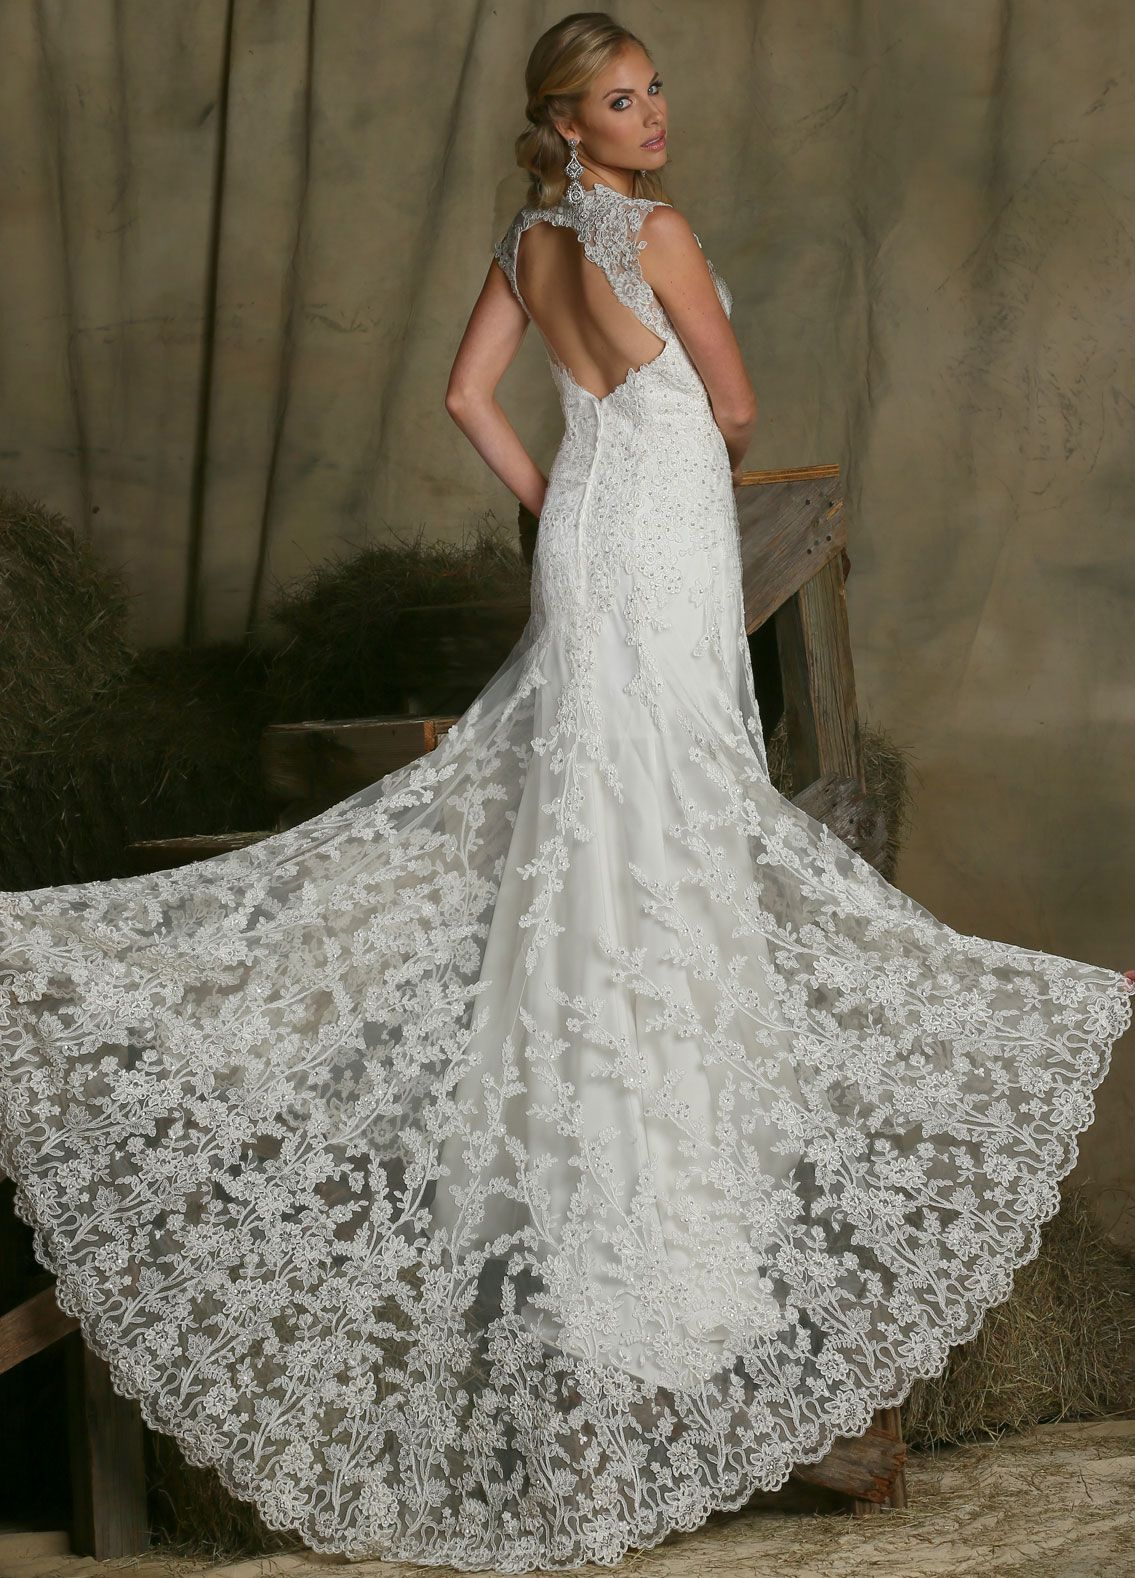 Image showing back view of style wedding dress ideas